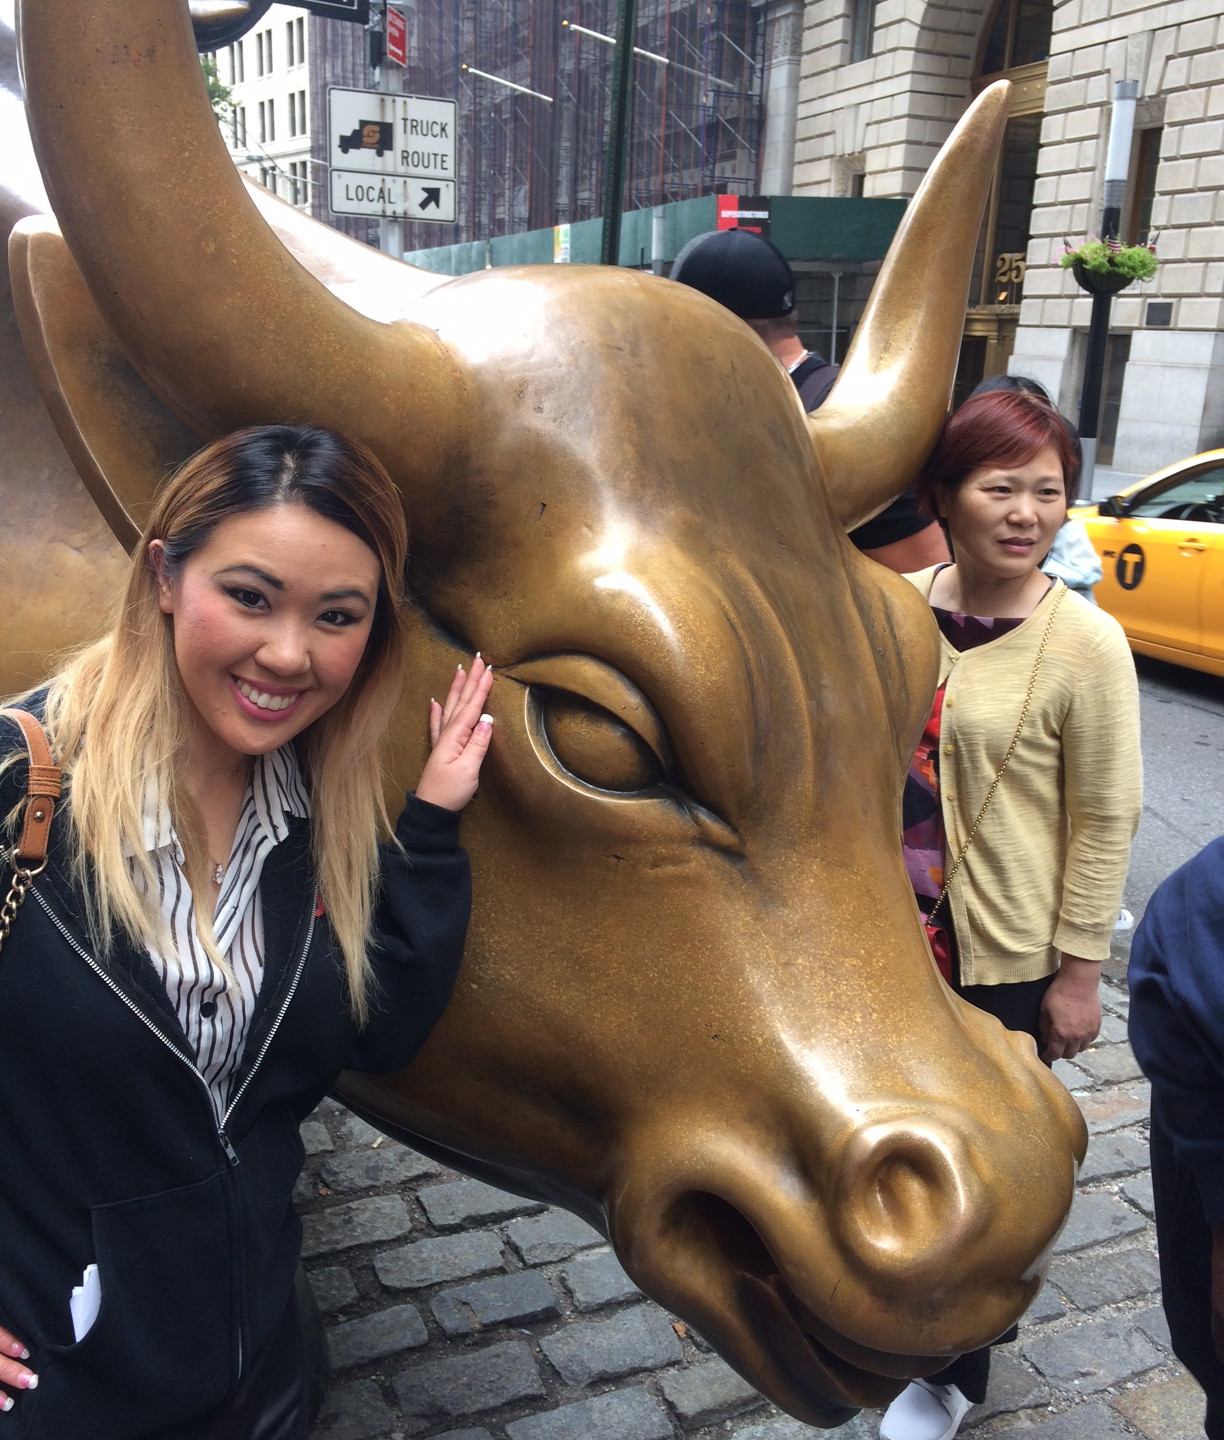 Me and The Charging Bull